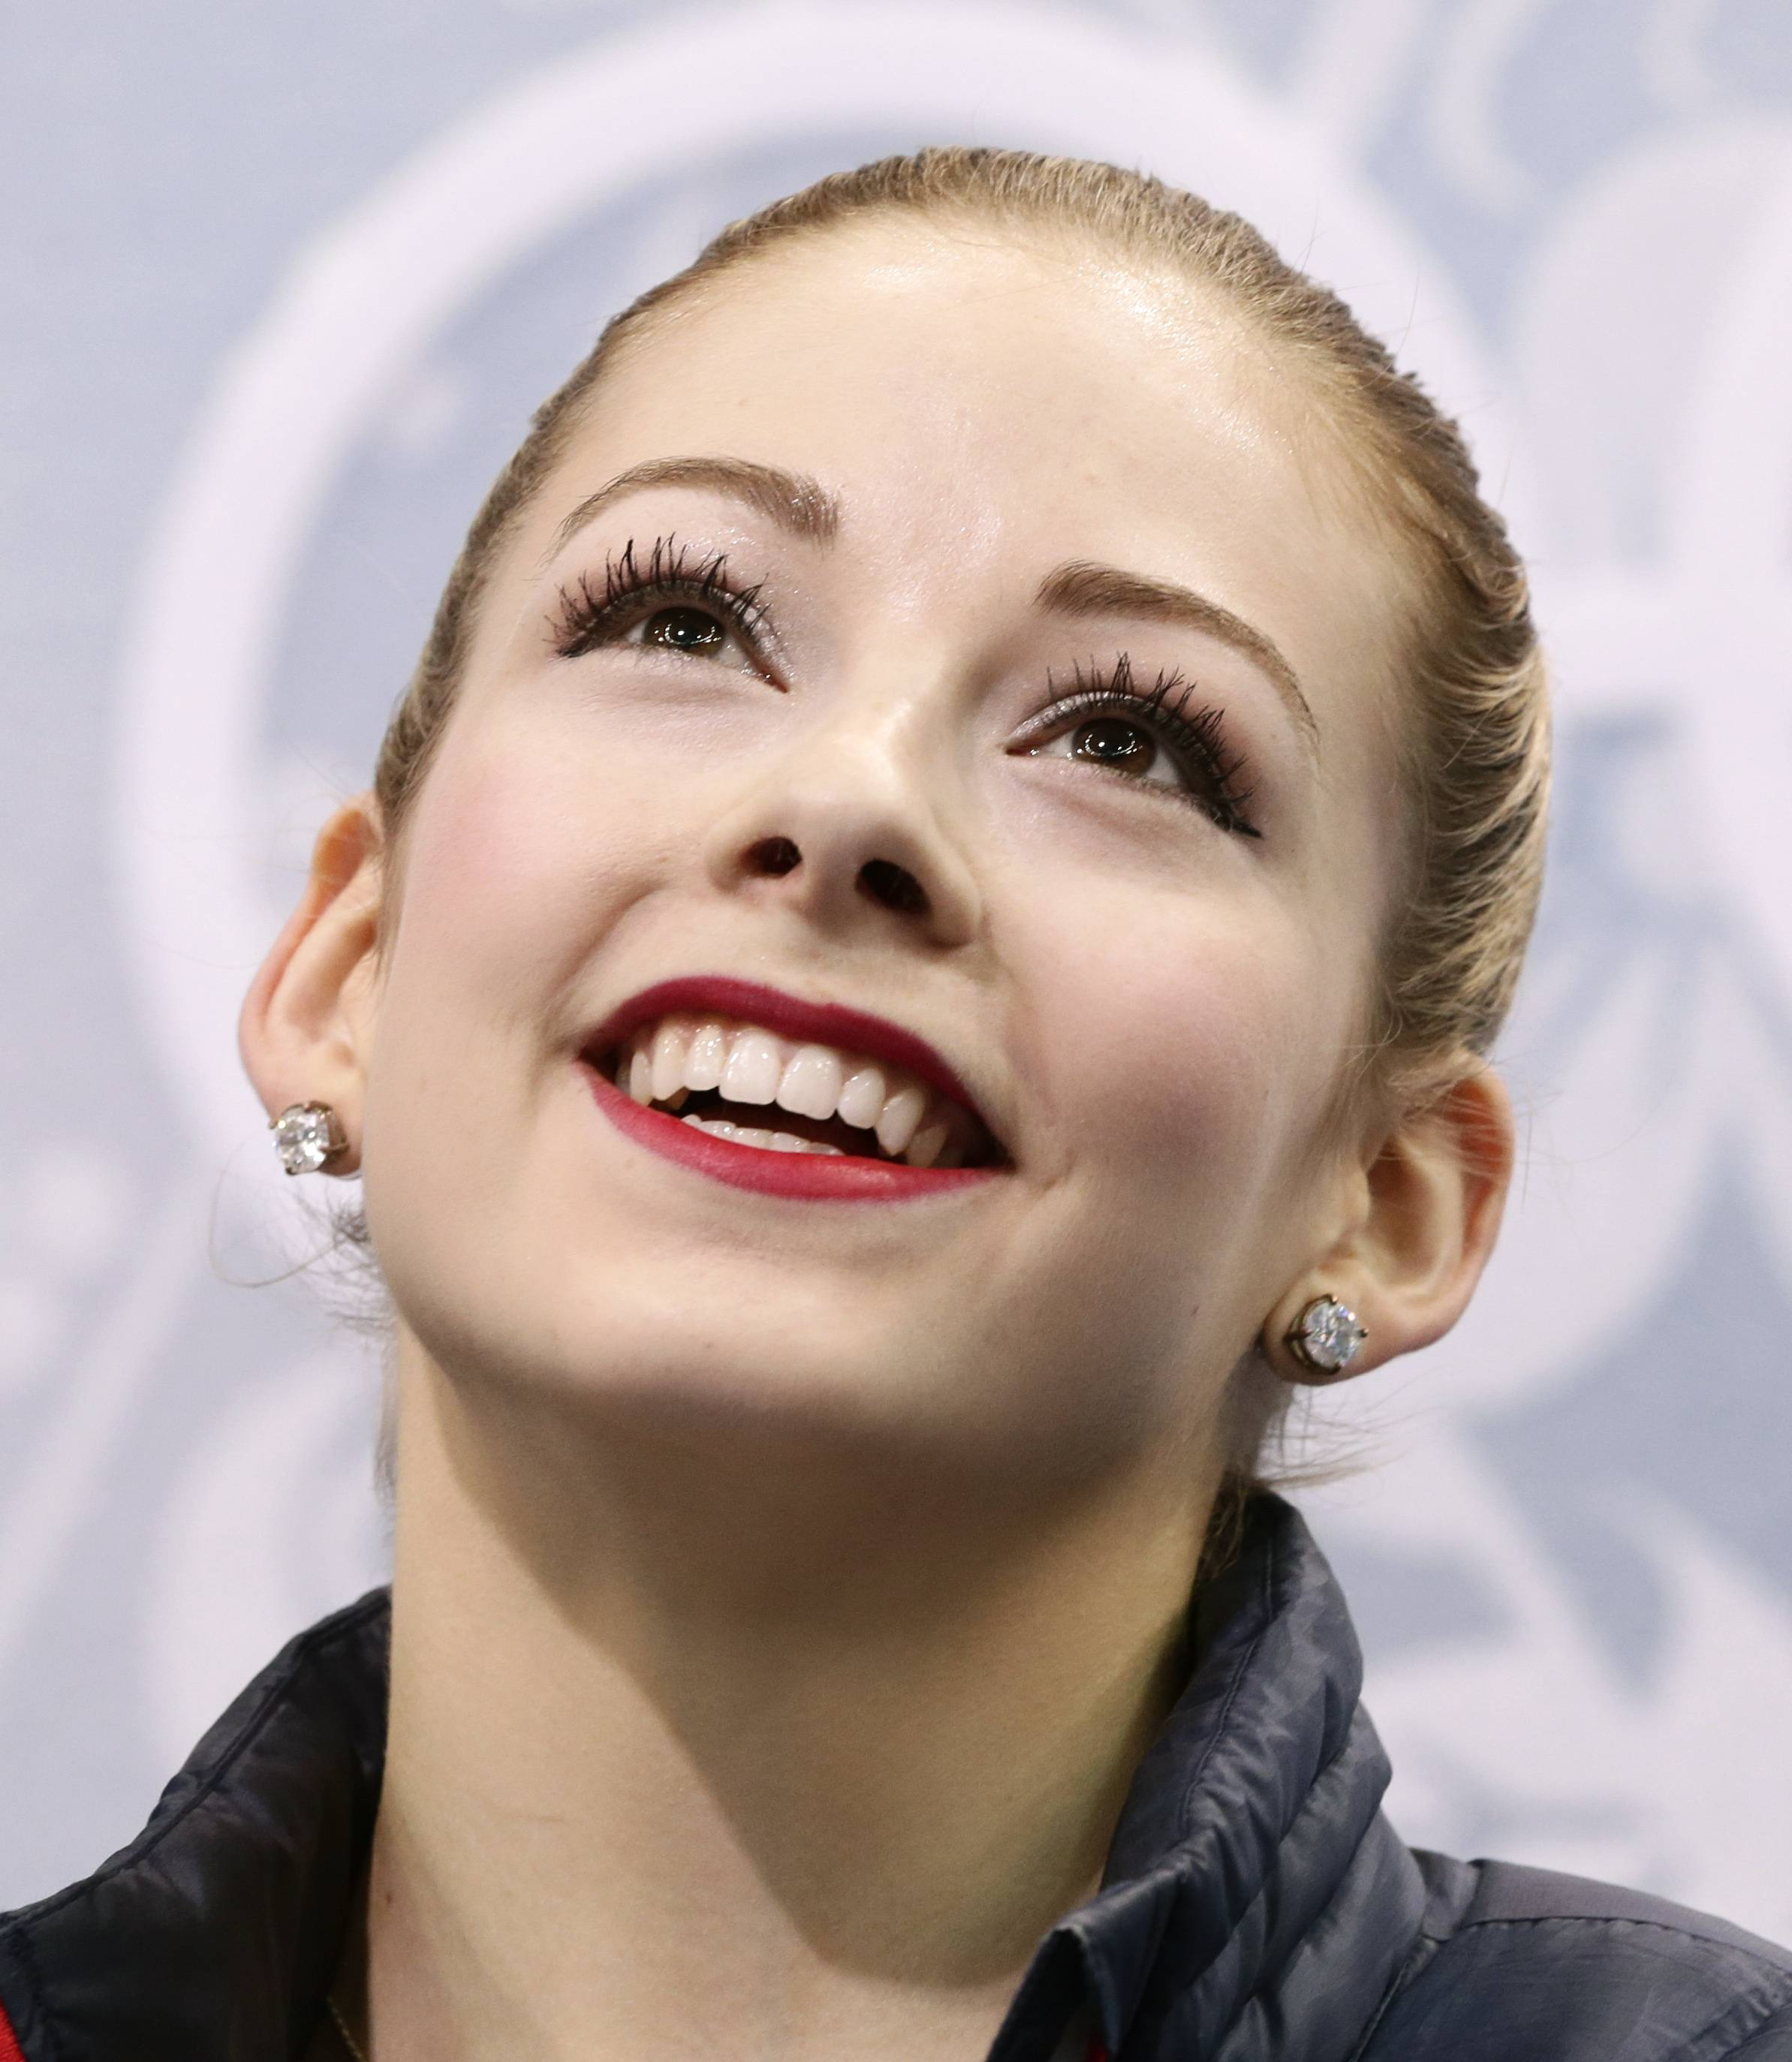 Gracie Gold of the United States waits in the results area after completing her routine in the women's short program figure skating competition at the Iceberg Skating Palace during the 2014 Winter Olympics, Wednesday, Feb. 19, 2014, in Sochi, Russia. (AP Photo/Bernat Armangue)